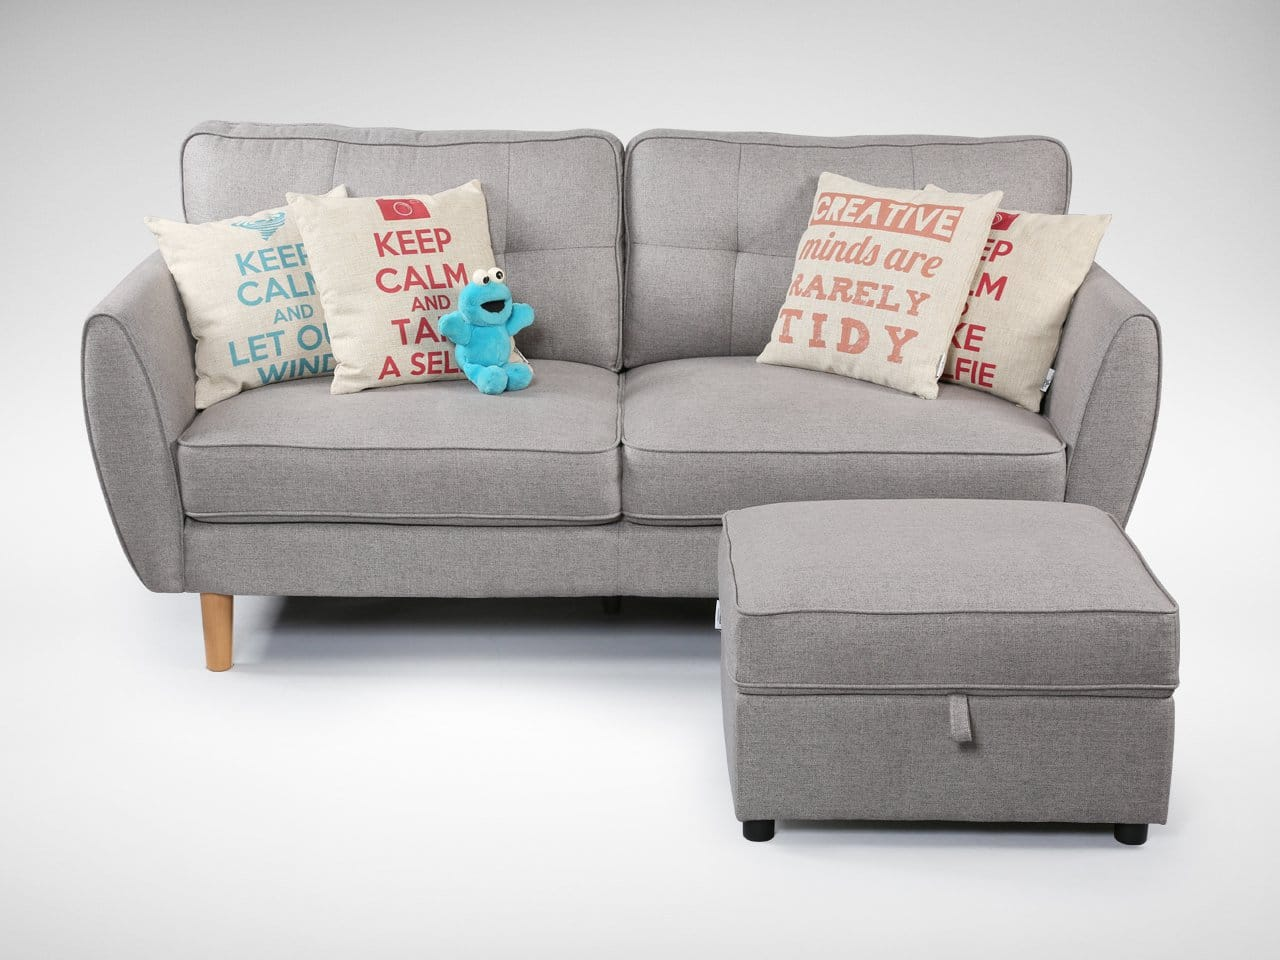 [Korito 3-Seater Sofa, Treasure Ottoman & Cushions (Keep Calm Let Out Wind, Keep Calm Selfie & Creative Minds)]<br />